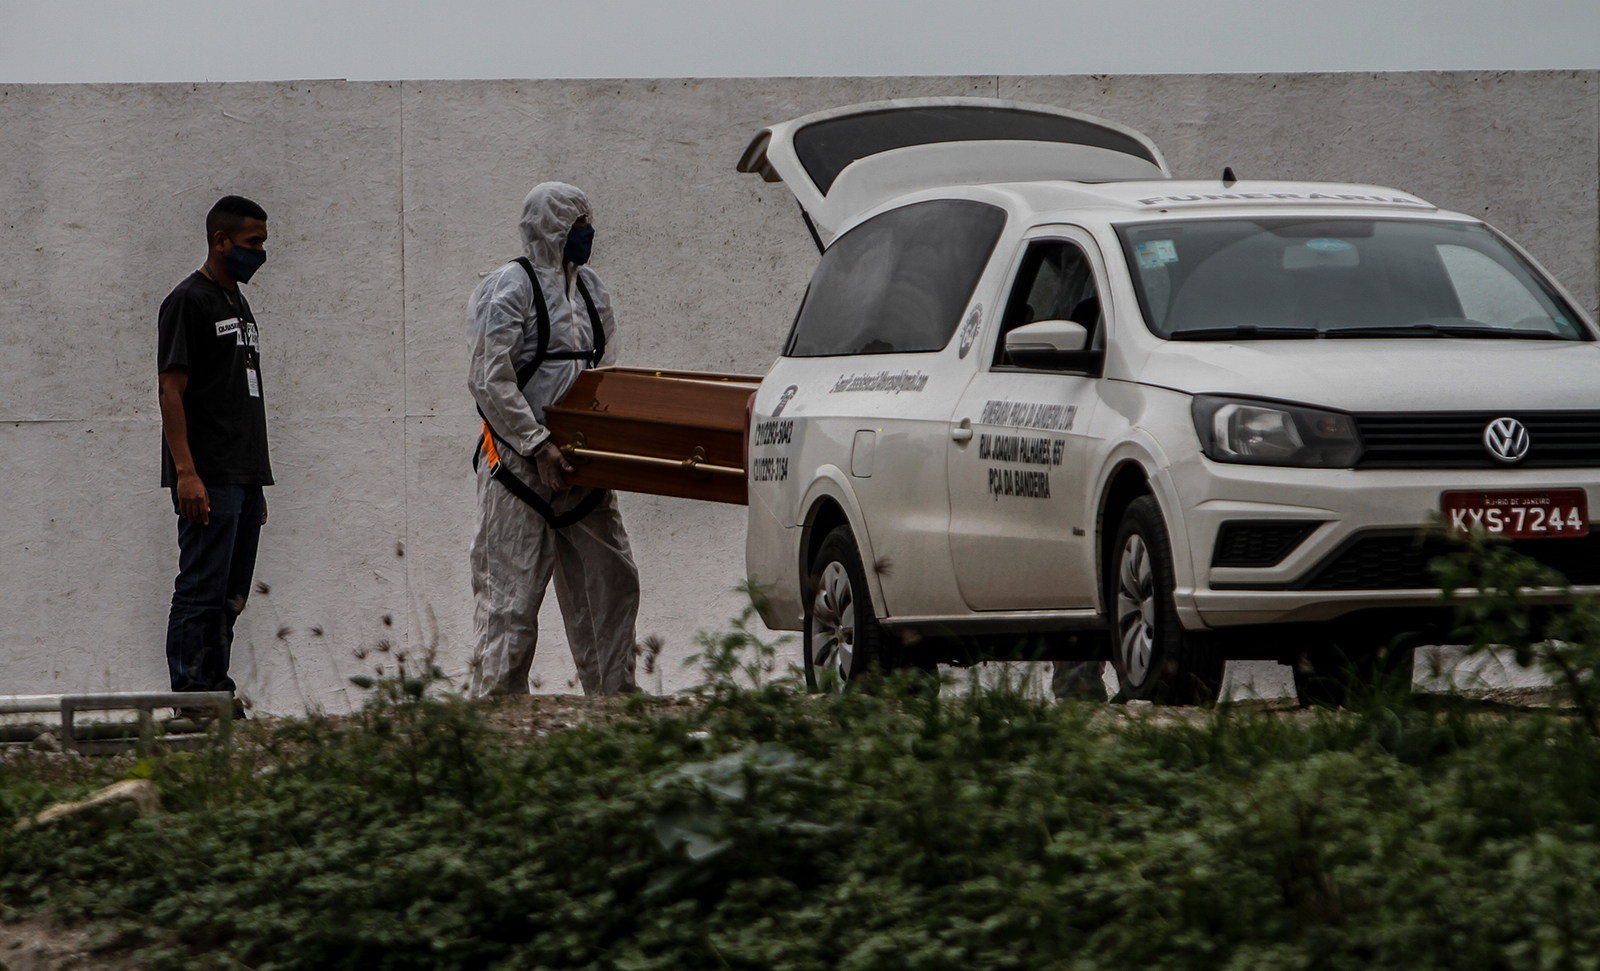 Cemetery workers in protective suits carry a coffin at the Caju cemetery amidst the coronavirus pandemic on July 16, in Rio de Janeiro.